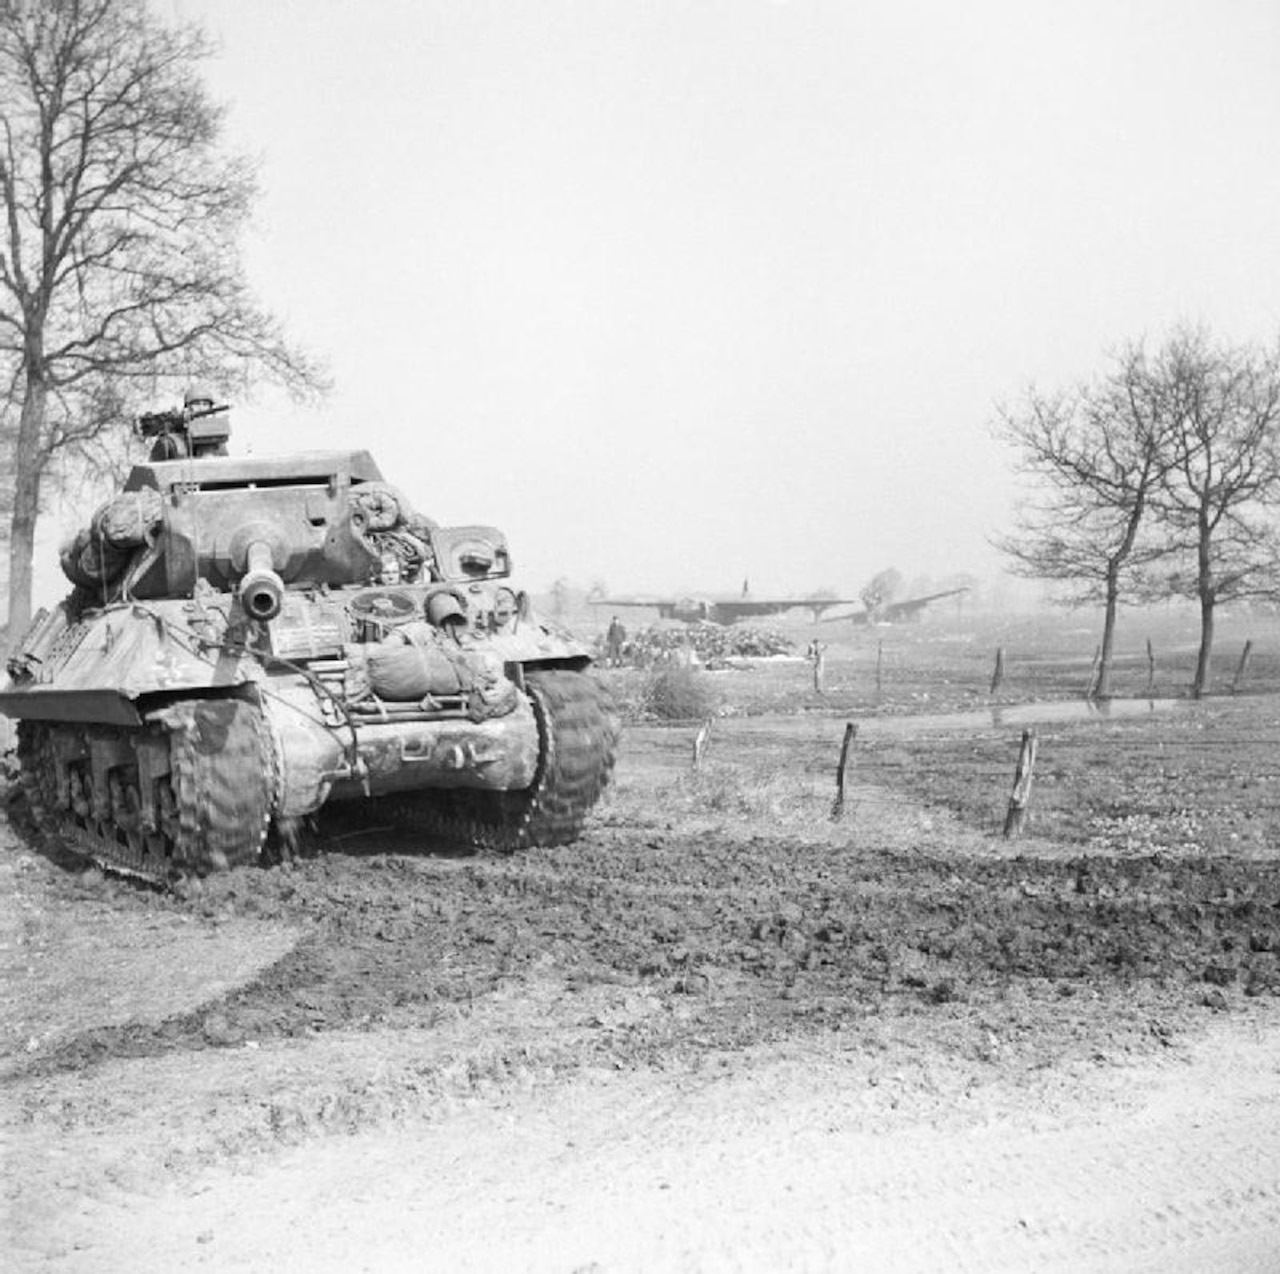 A tank moves down a dirt road.